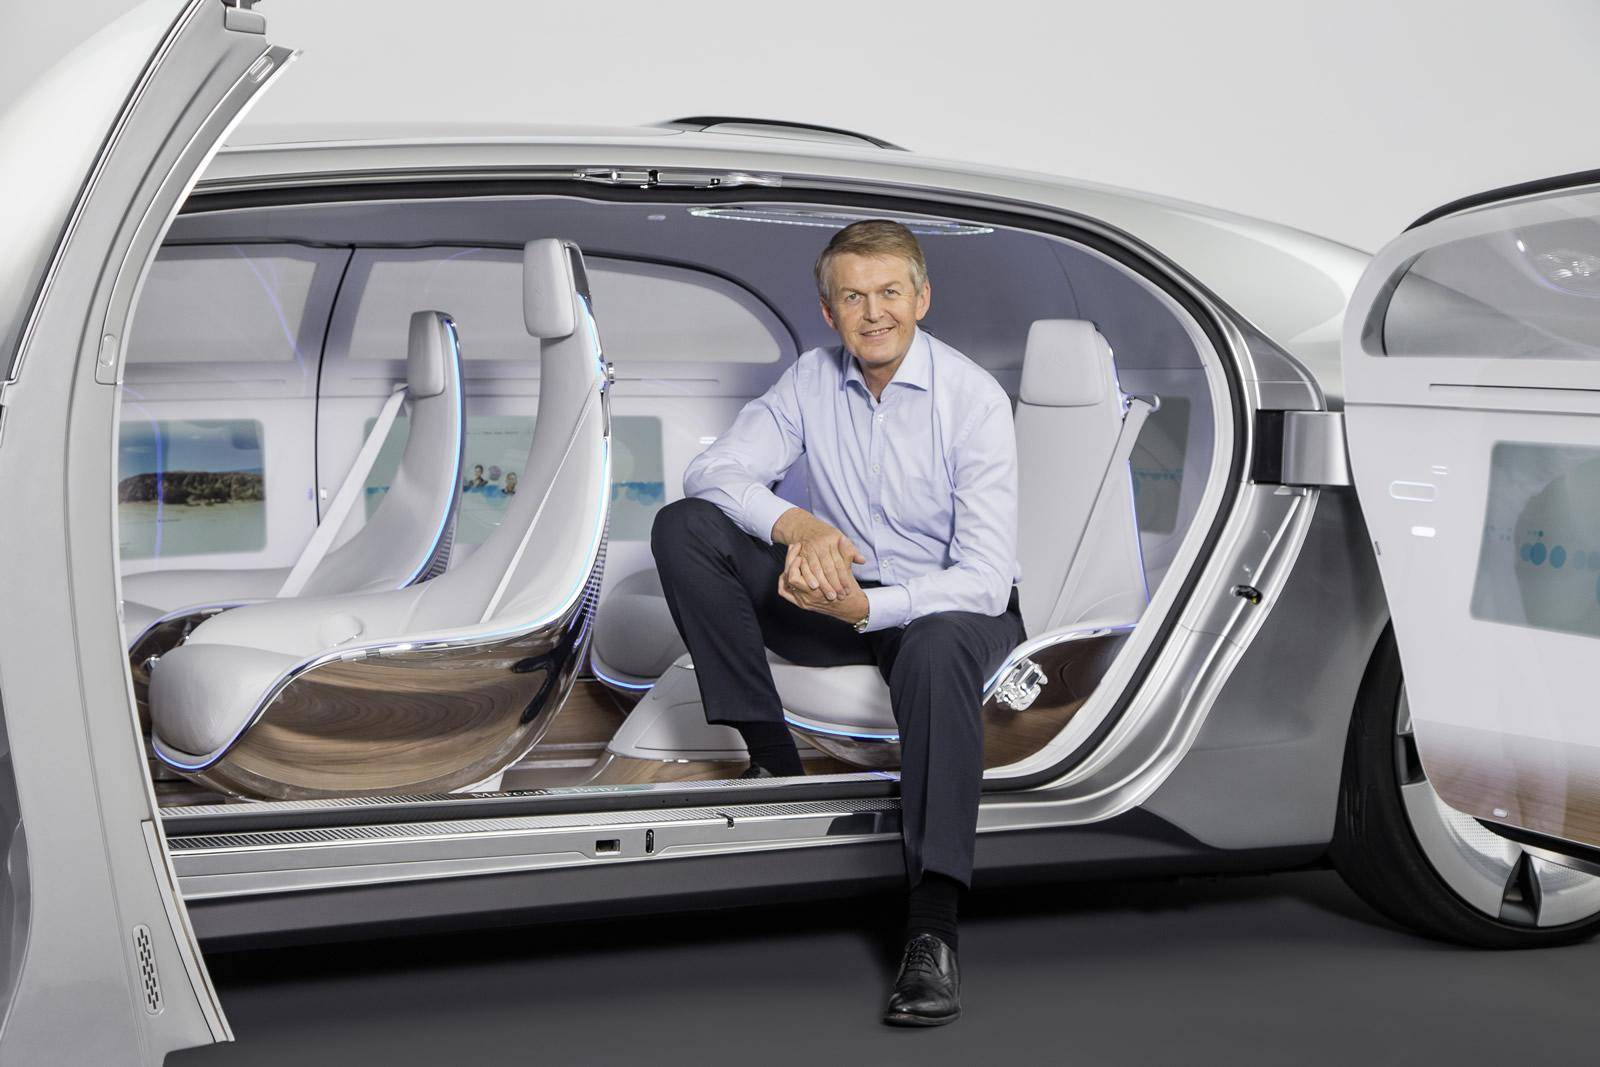 mercedes-benz-f015-luxury-in-motion-concept-2015-consumer-electronics-show_100495734_h